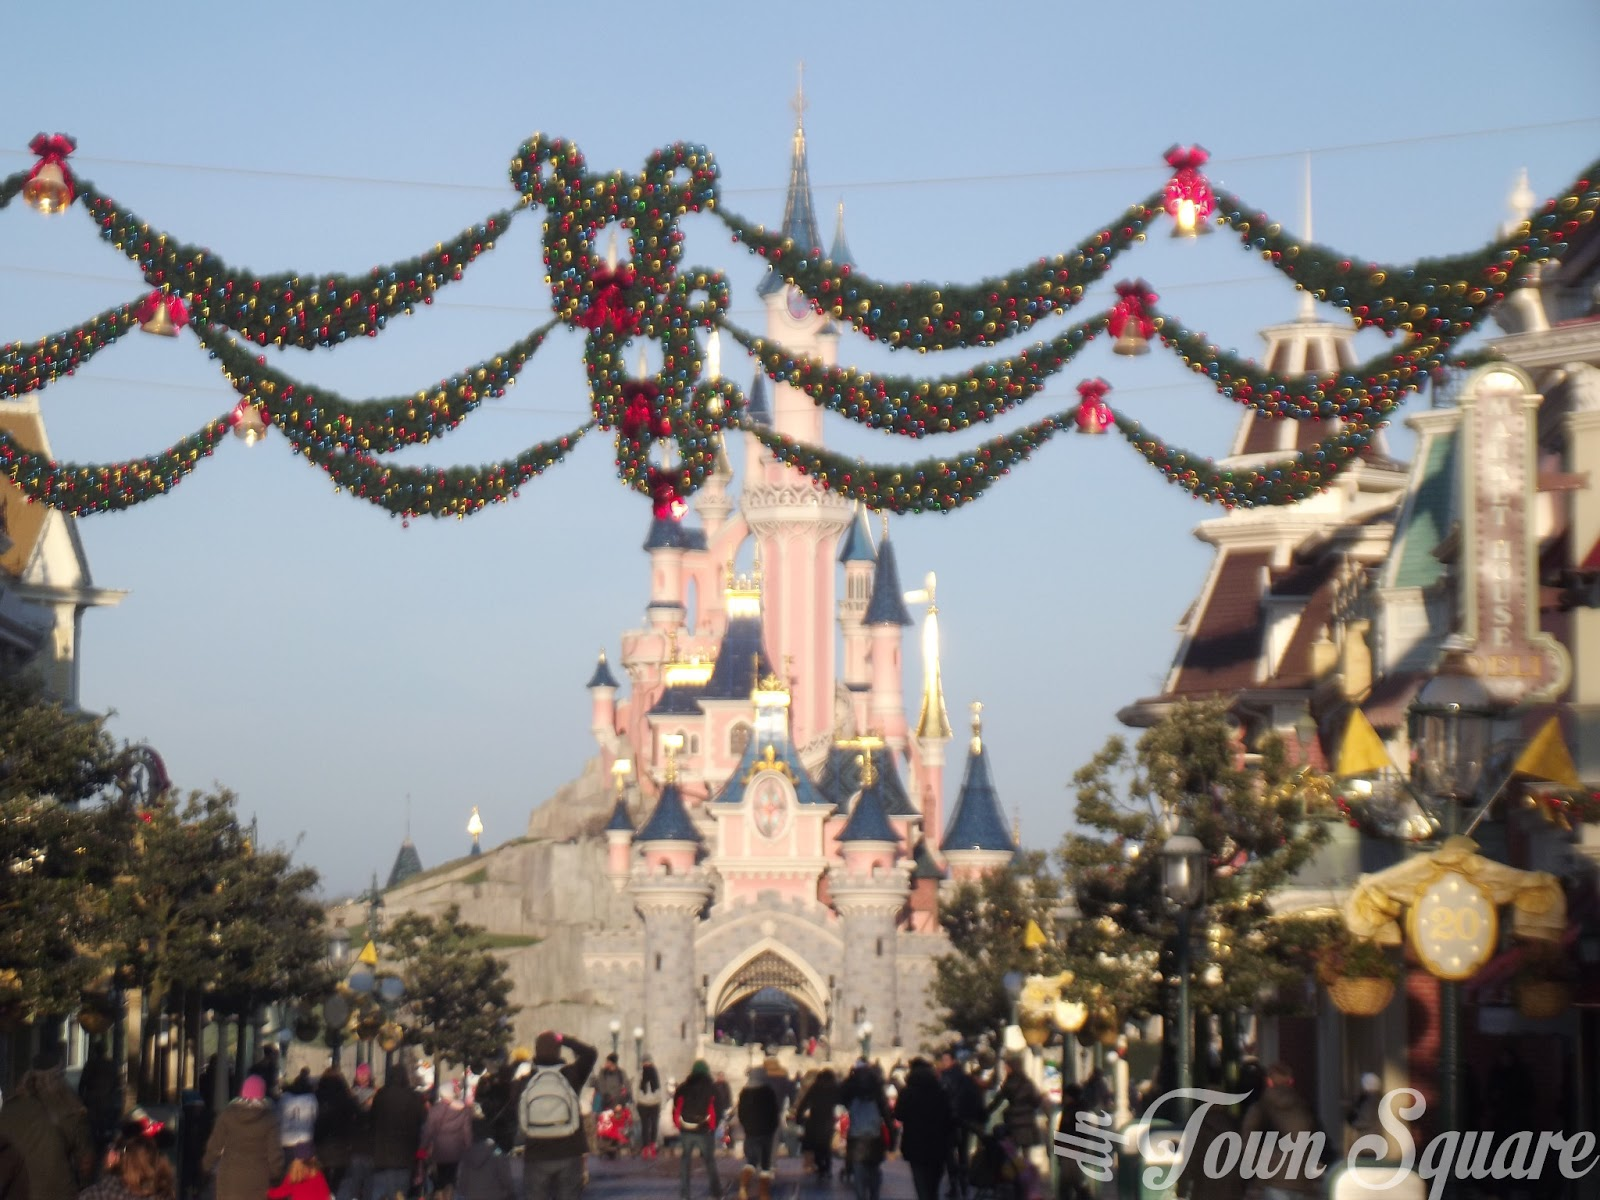 Main Street USA Christmas decorations